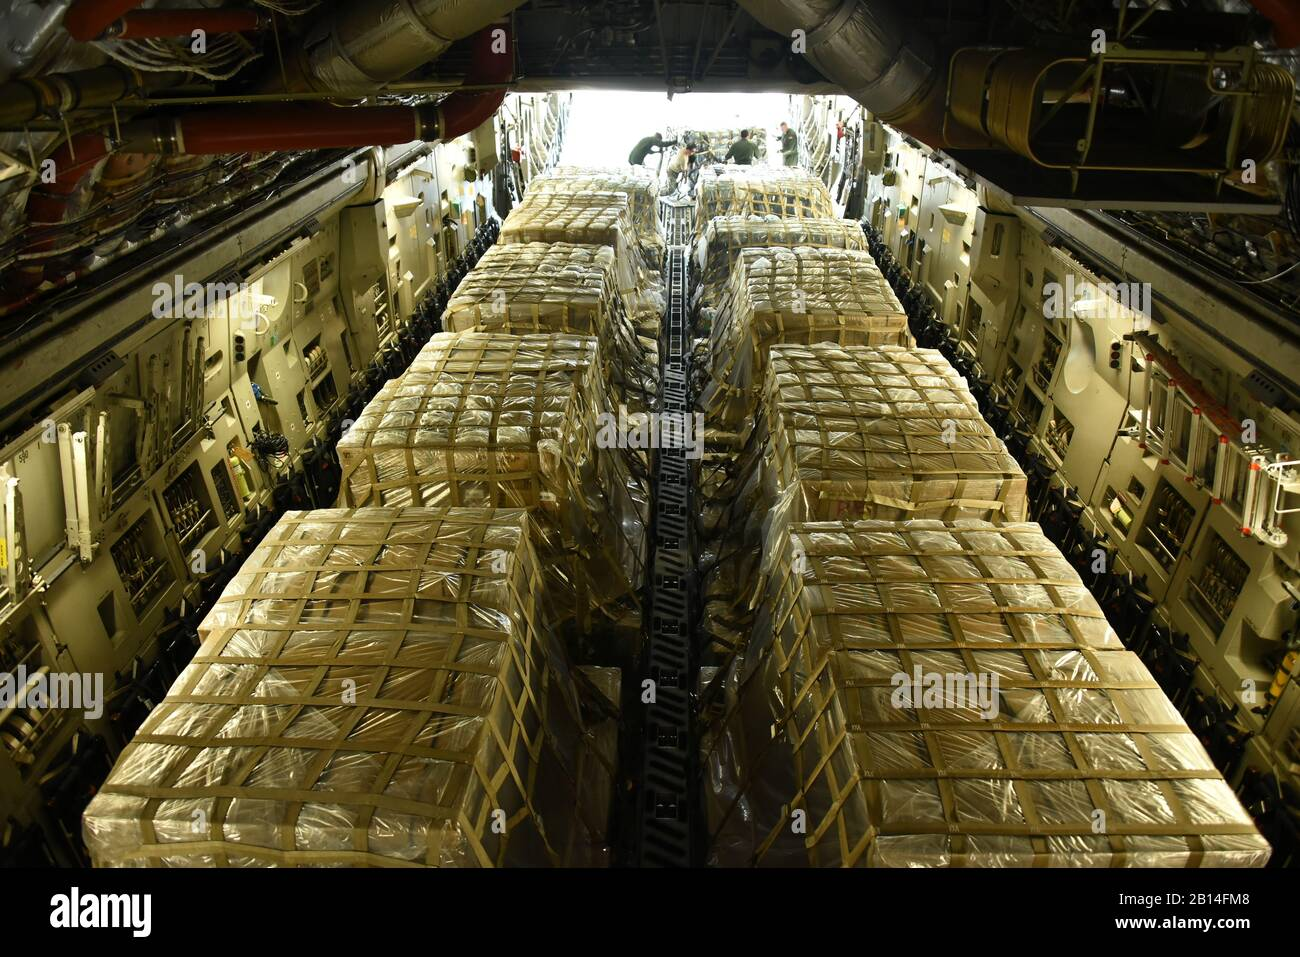 Georgia and New York National Guard Airmen load 90,000 pounds of water and meals ready to eat onto a C-17 Globemaster III at the Savannah Air National Guard Base on Sept. 27, 2017. Aircrew from the 105th Airlift Wing in New York airlifted supplies to disaster-stricken areas hit by Hurricane Maria. The Savannah Air National Guard base serves as the hub for aircraft flying to and from the disaster areas, as well as flying missions. (U.S. Air National Guard by Senior Airman Brandon Patterson) Stock Photo